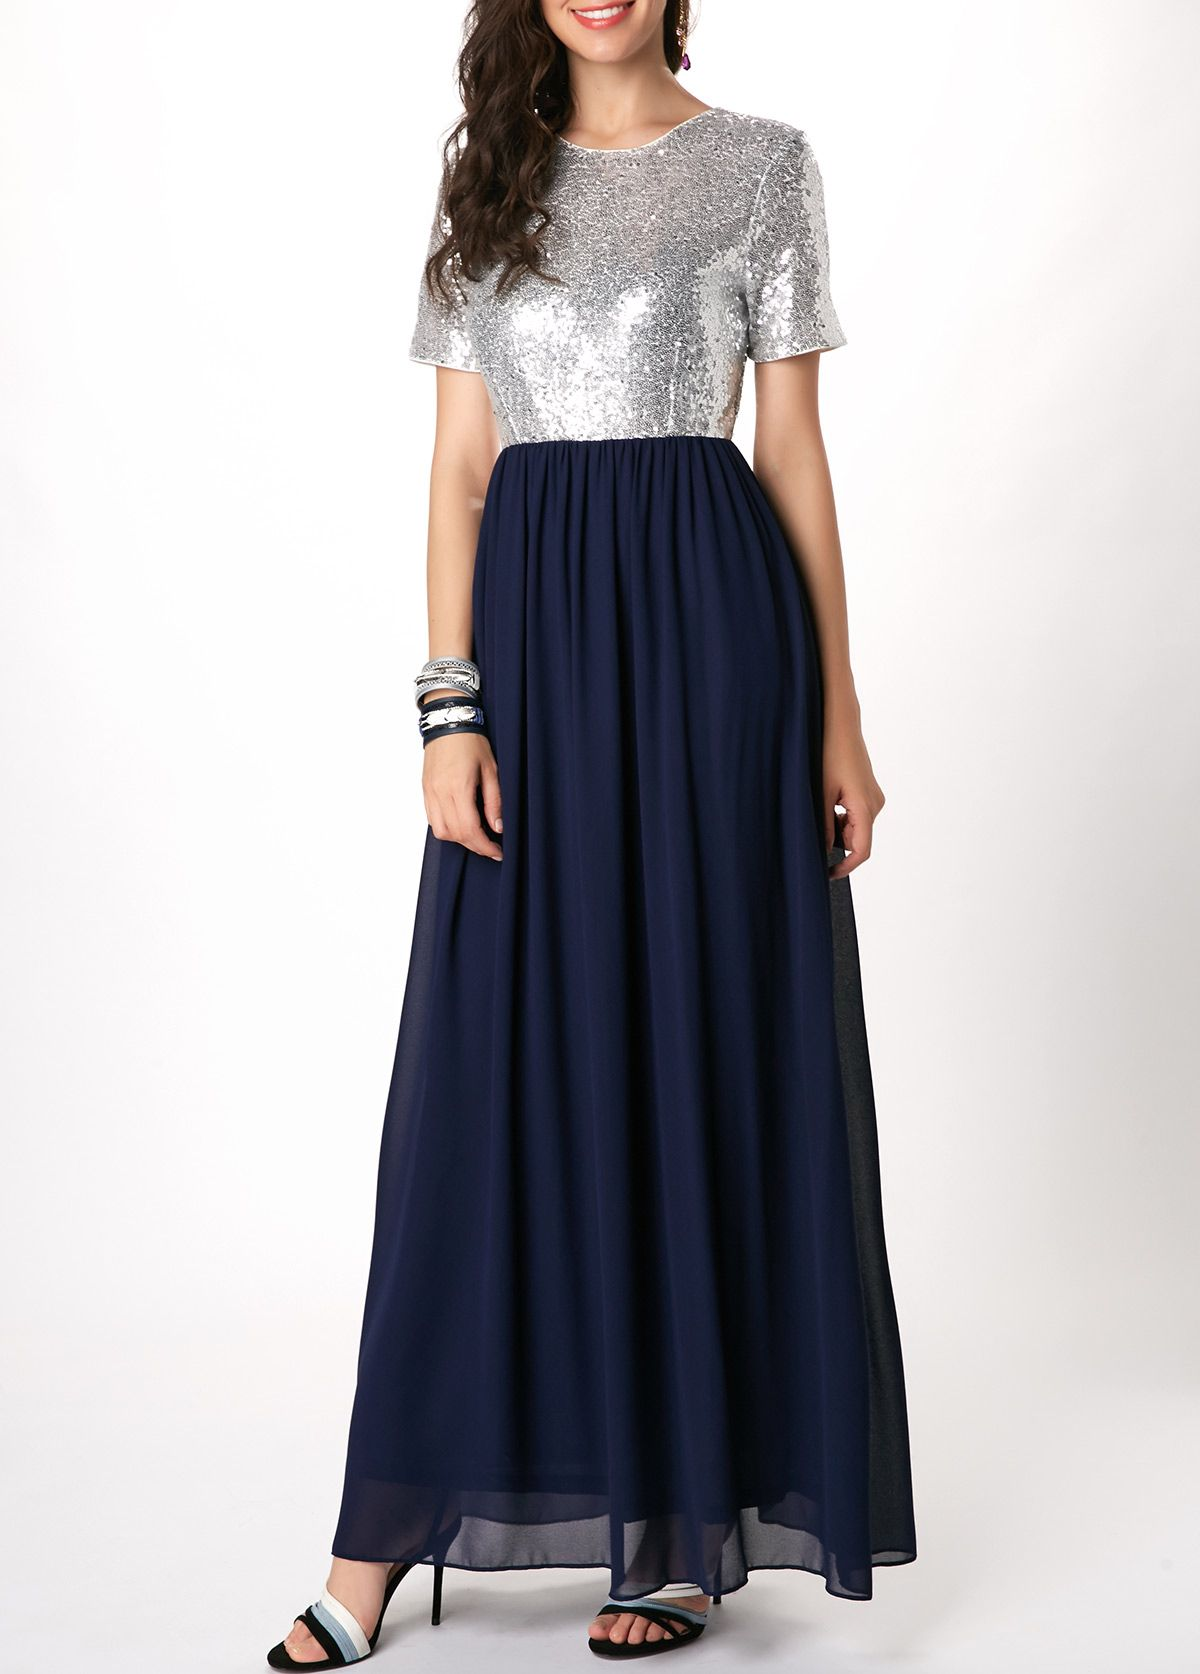 052b6cab0c High Waist Short Sleeve Sequin Embellished Maxi Dress